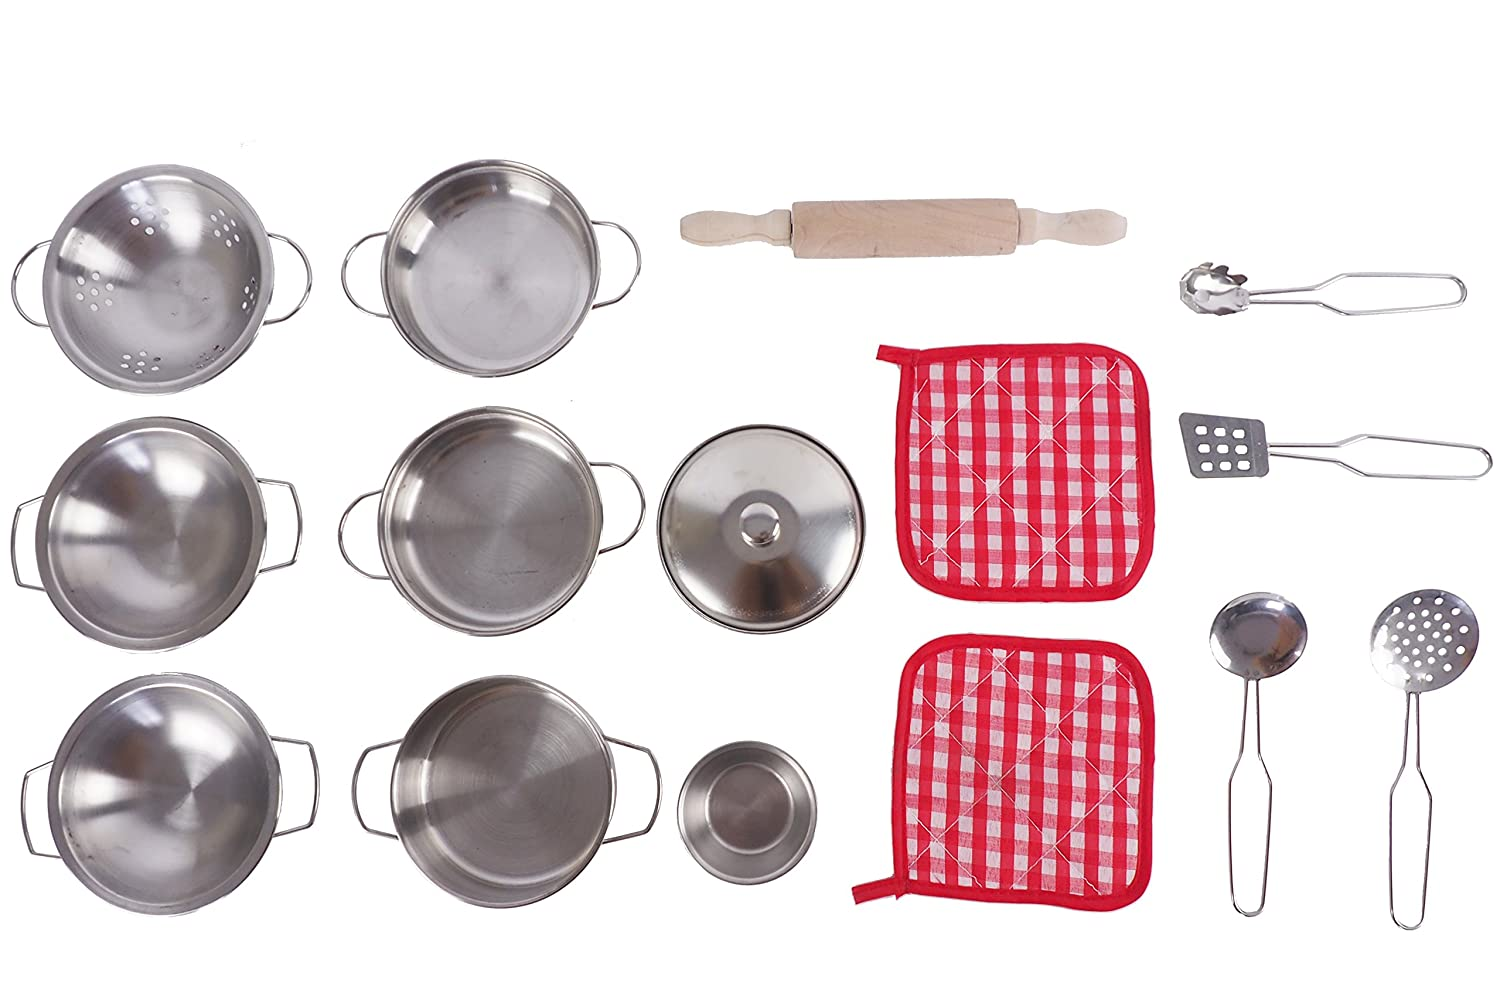 15 pieces Pretend toys Little chef Stainless,Kitchen Pretend Toys Stainless with Stainless Steel Pots and Pans Cookware,Kitchen Toys Pretend Cooking Toy